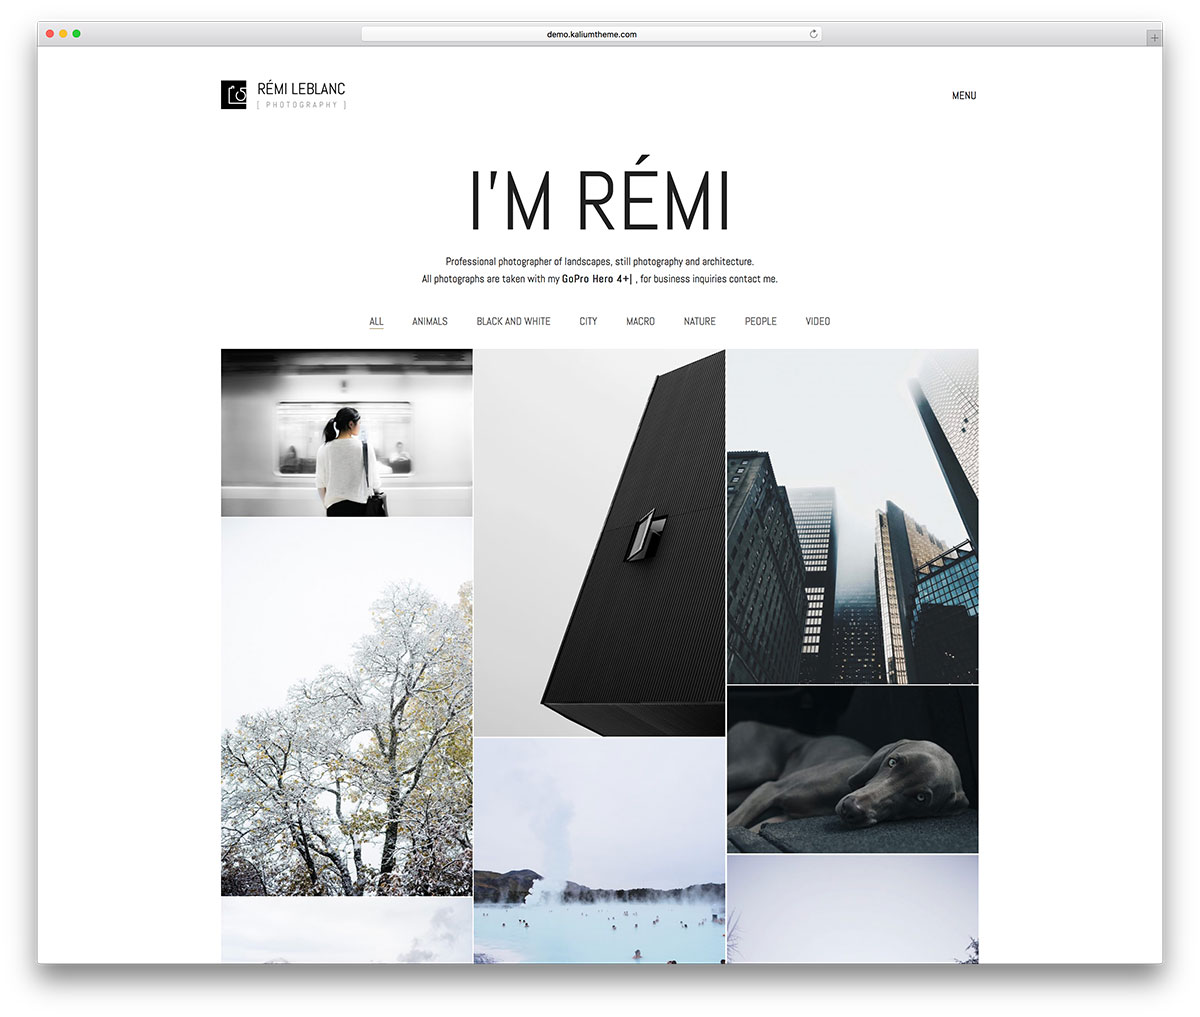 kalium-photographie-wordpress-site-template &quot;width =&quot; 1200 &quot;height =&quot; 1017 &quot;data-lazy-srcset =&quot; https://cdn.colorlib.com/wp/wp-content/uploads/sites/2/kalium -photography-wordpress-website-template.jpg 1200w, https://cdn.colorlib.com/wp/wp-content/uploads/sites/2/kalium-photography-wordpress-website-template-300x254.jpg 300w, https : //cdn.colorlib.com/wp/wp-content/uploads/sites/2/kalium-photography-wordpress-website-template-768x651.jpg 768w, https://cdn.colorlib.com/wp/wp- contenu / uploads / sites / 2 / kalium-photography-wordpress-website-template-1024x868.jpg 1024w &quot;data-lazy-tailles =&quot; (largeur maximale: 1200px) 100vw, 1200px &quot;data-lazy-src =&quot; https: //cdn.colorlib.com/wp/wp-content/uploads/sites/2/kalium-photography-wordpress-website-template.jpg?is-pending-load=1 &quot;srcset =&quot; data: image / gif; base64 , R0lGODlhAQABAIAAAAAAAAP /// yH5BAEAAAAALAAAAAABAAEAAAIBRAA7 &quot;/&gt;</p> <p><noscript><img class=